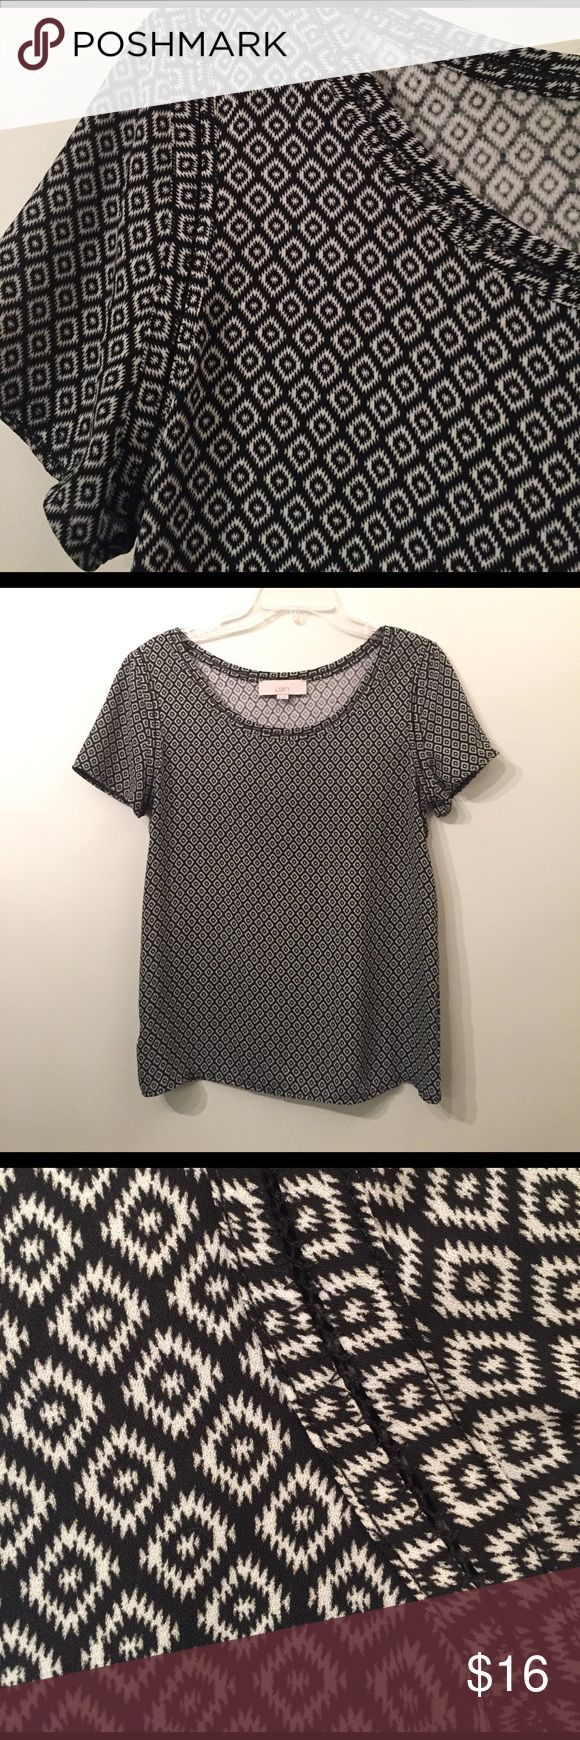 LOFT black and white short sleeve blouse LOFT black and white patterned blouse. Short sleeves with detail around neckline and arm holes. Front panel 100% polyester silky feel. Back panel of shirt 70% rayon and 30% lyocell. LOFT Tops Blouses